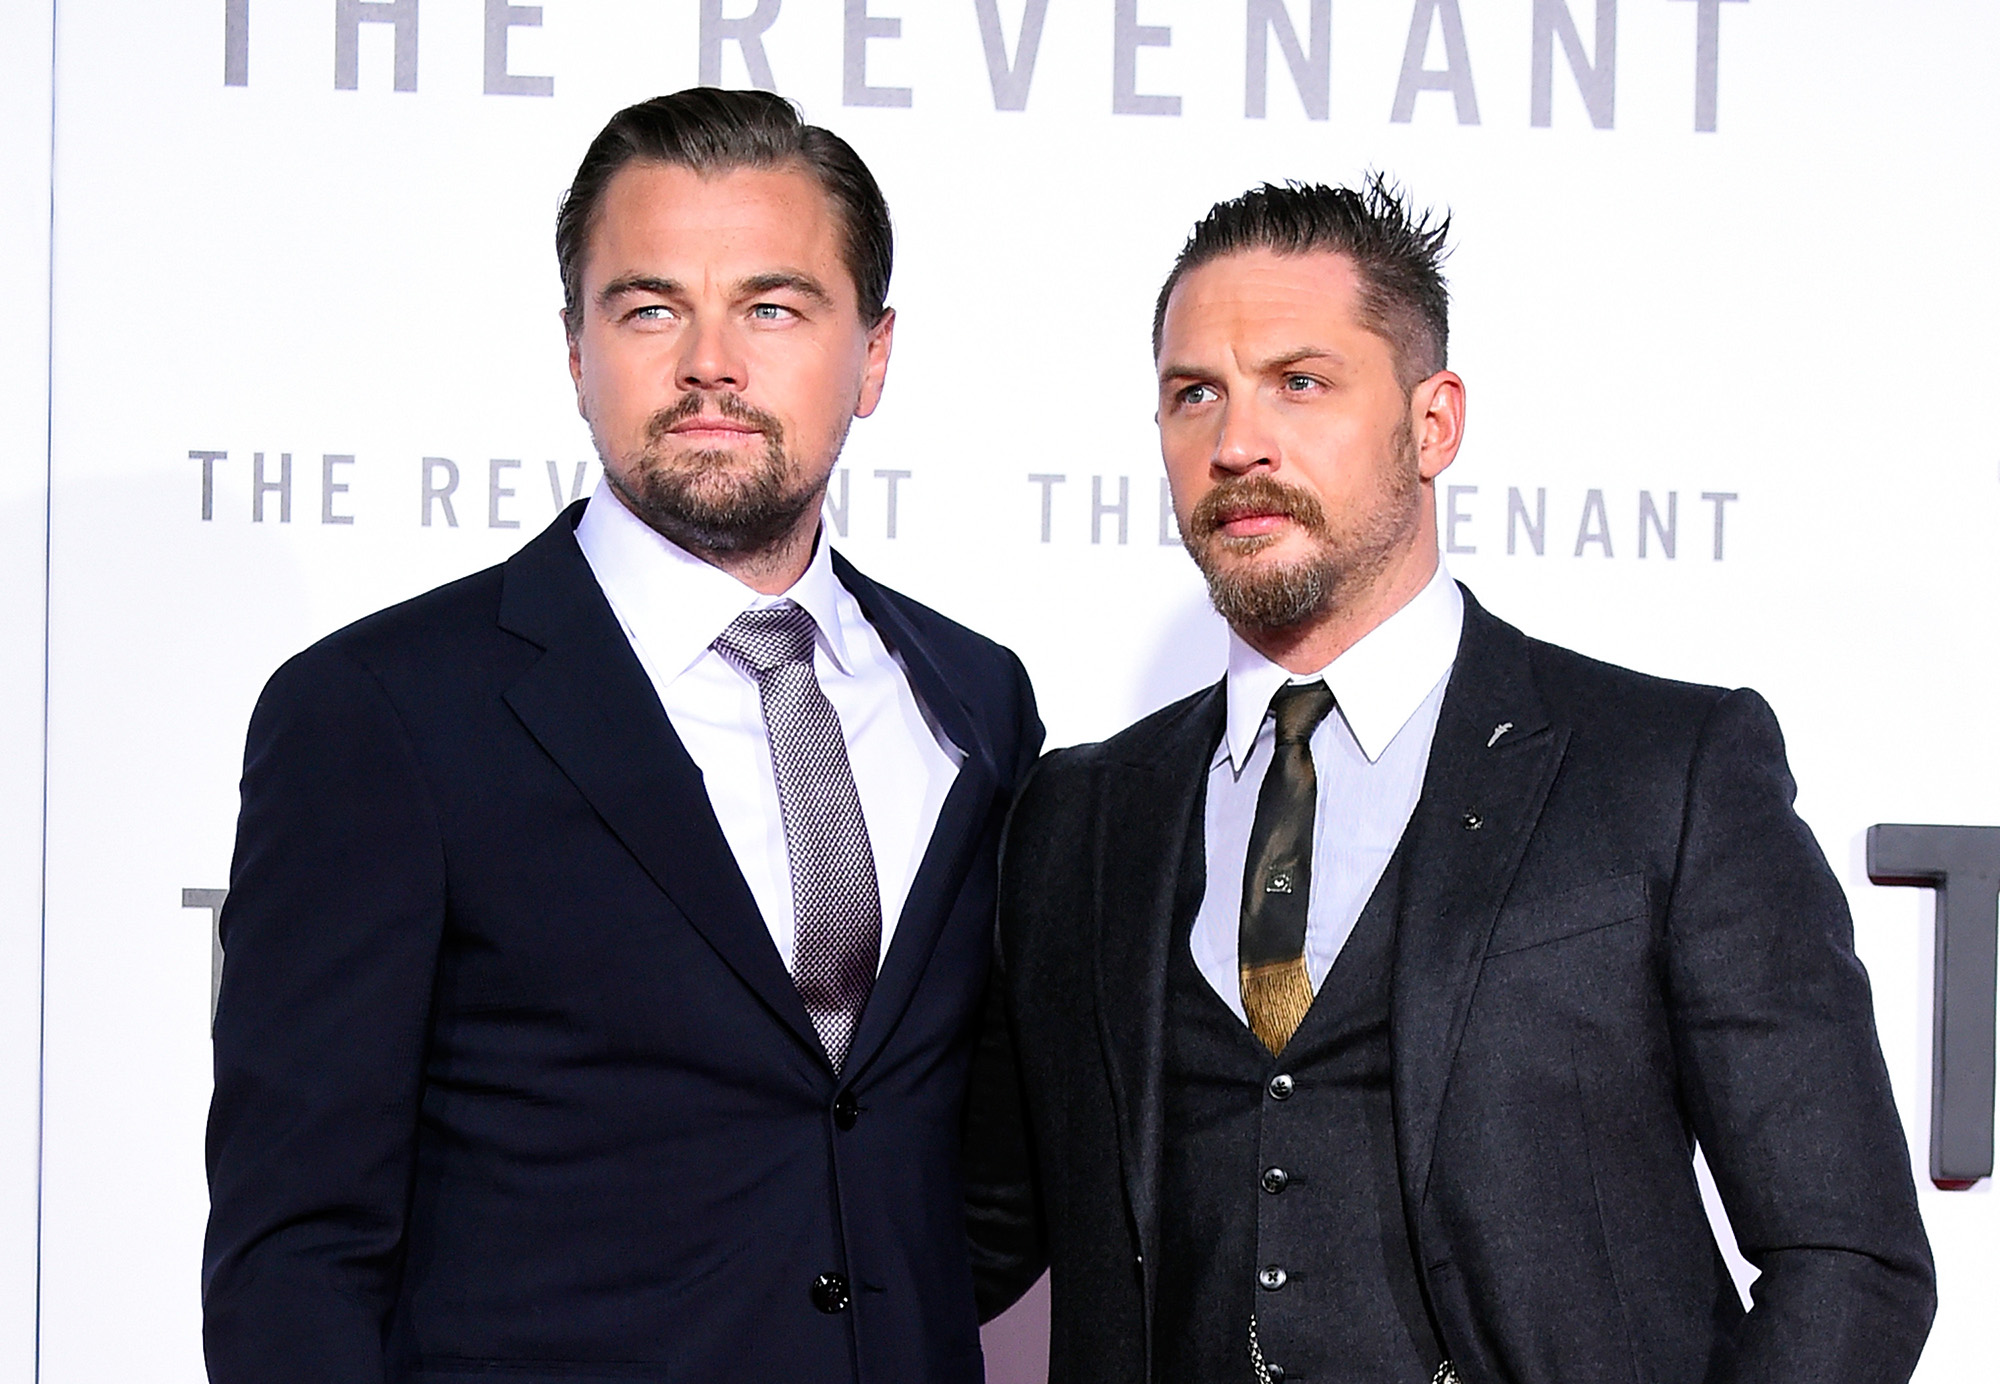 Leonardo DiCaprio and Tom Hardy attend the premiere of 20th Century Fox and Regency Enterprises'  The Revenant  on December 16, 2015 in Hollywood, California.  (Photo by Frazer Harrison/Getty Images)